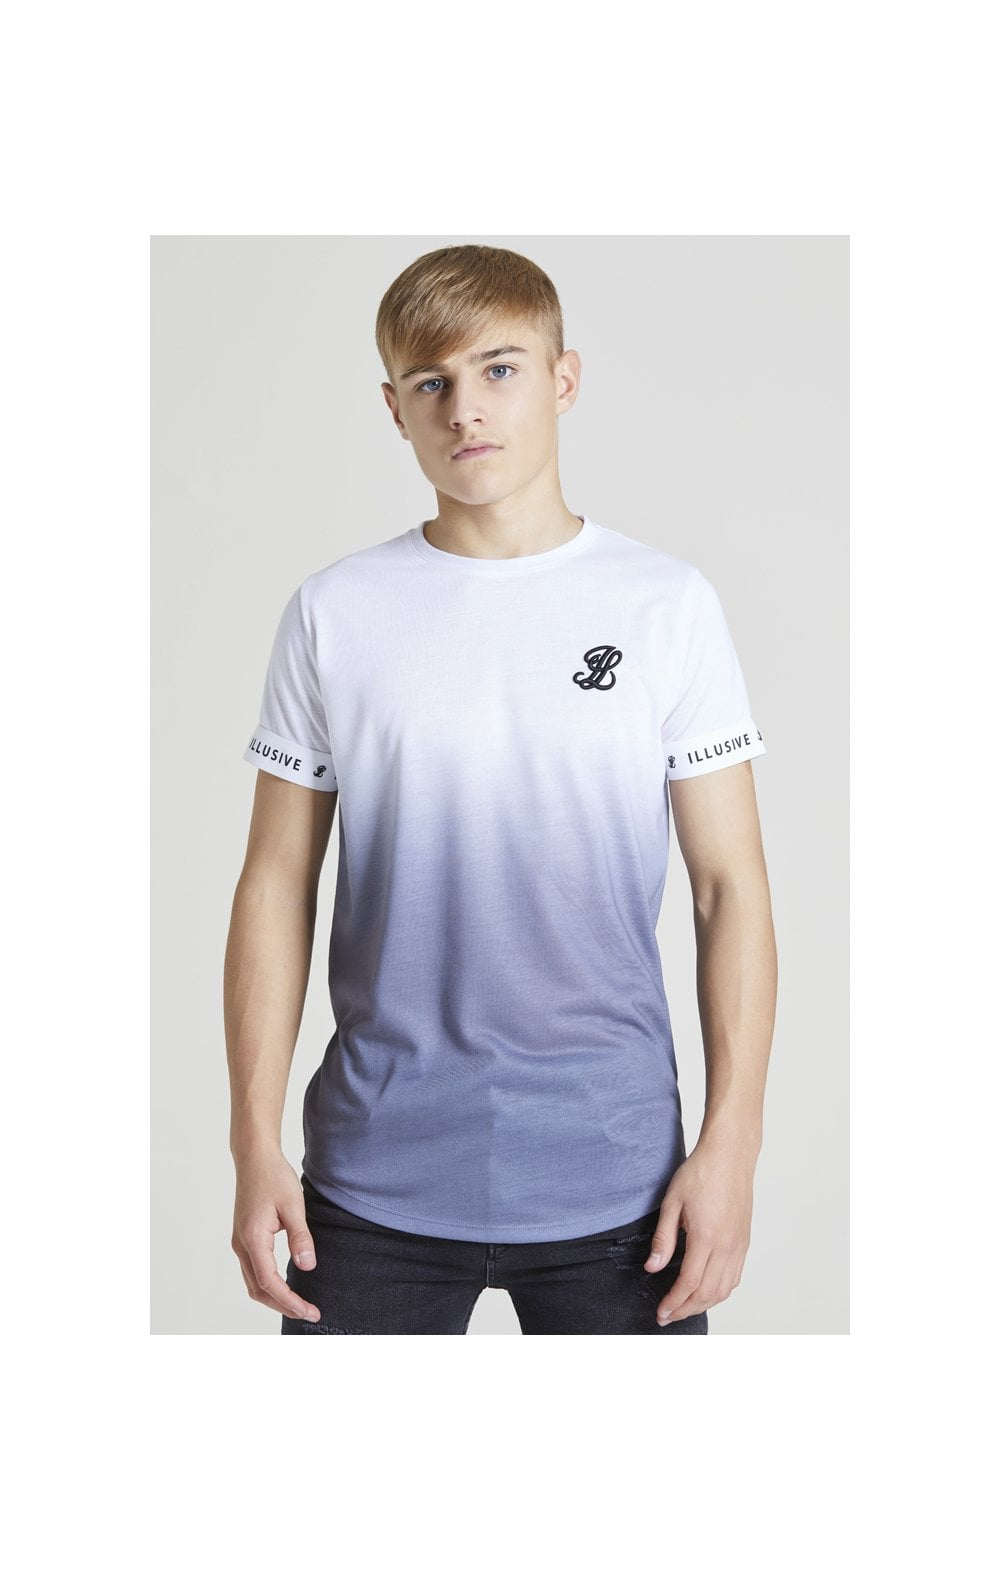 Load image into Gallery viewer, Illusive London Fade Tech Tee – White & Grey